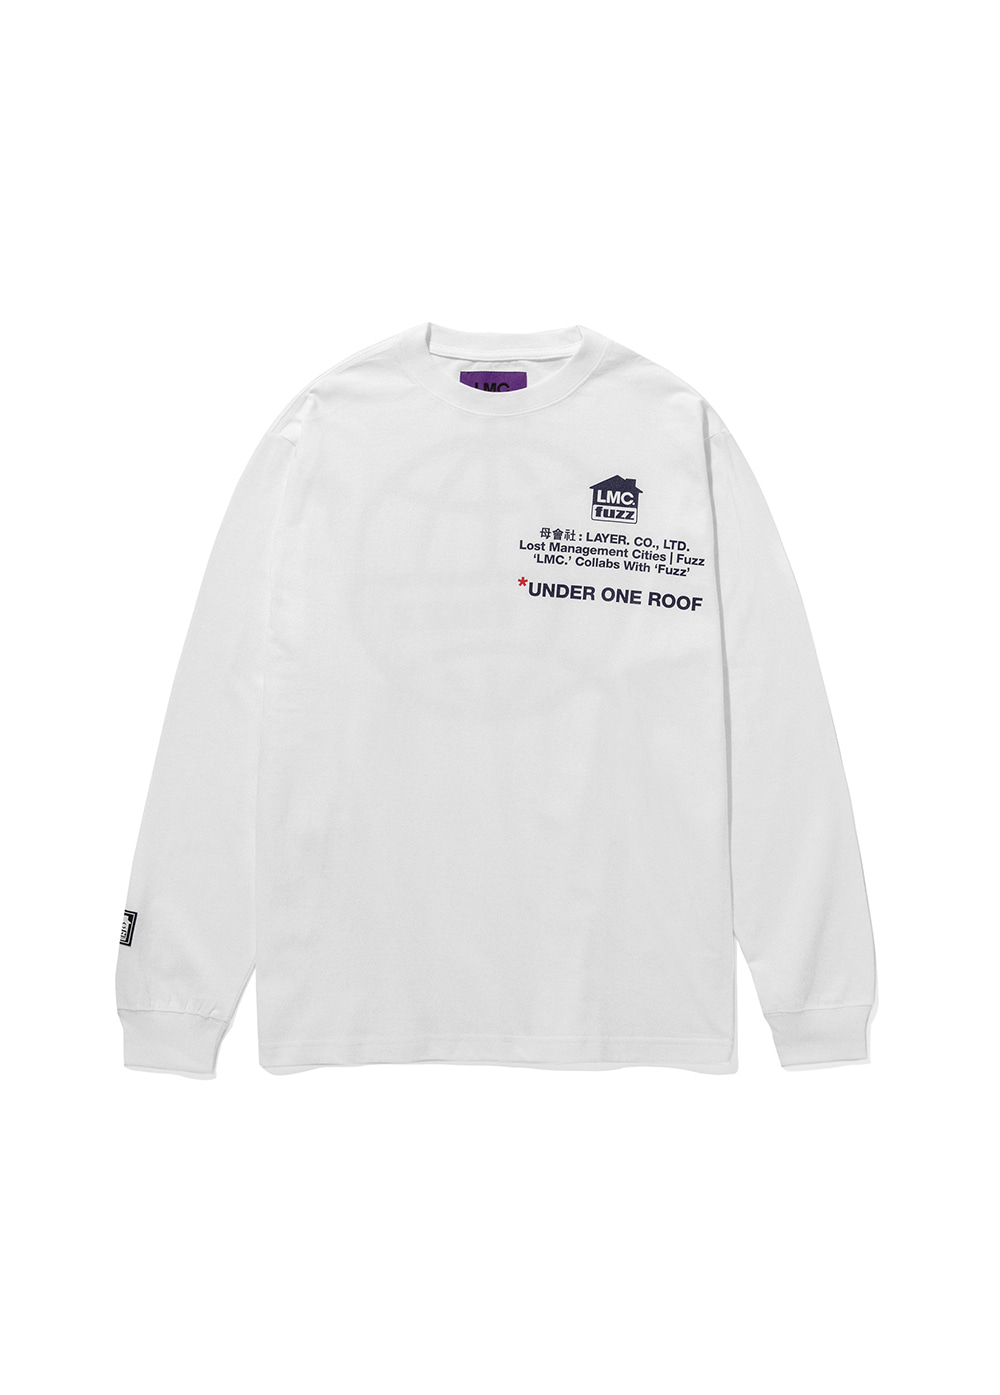 LMC x FUZZ HOUSE LONG SLV TEE white